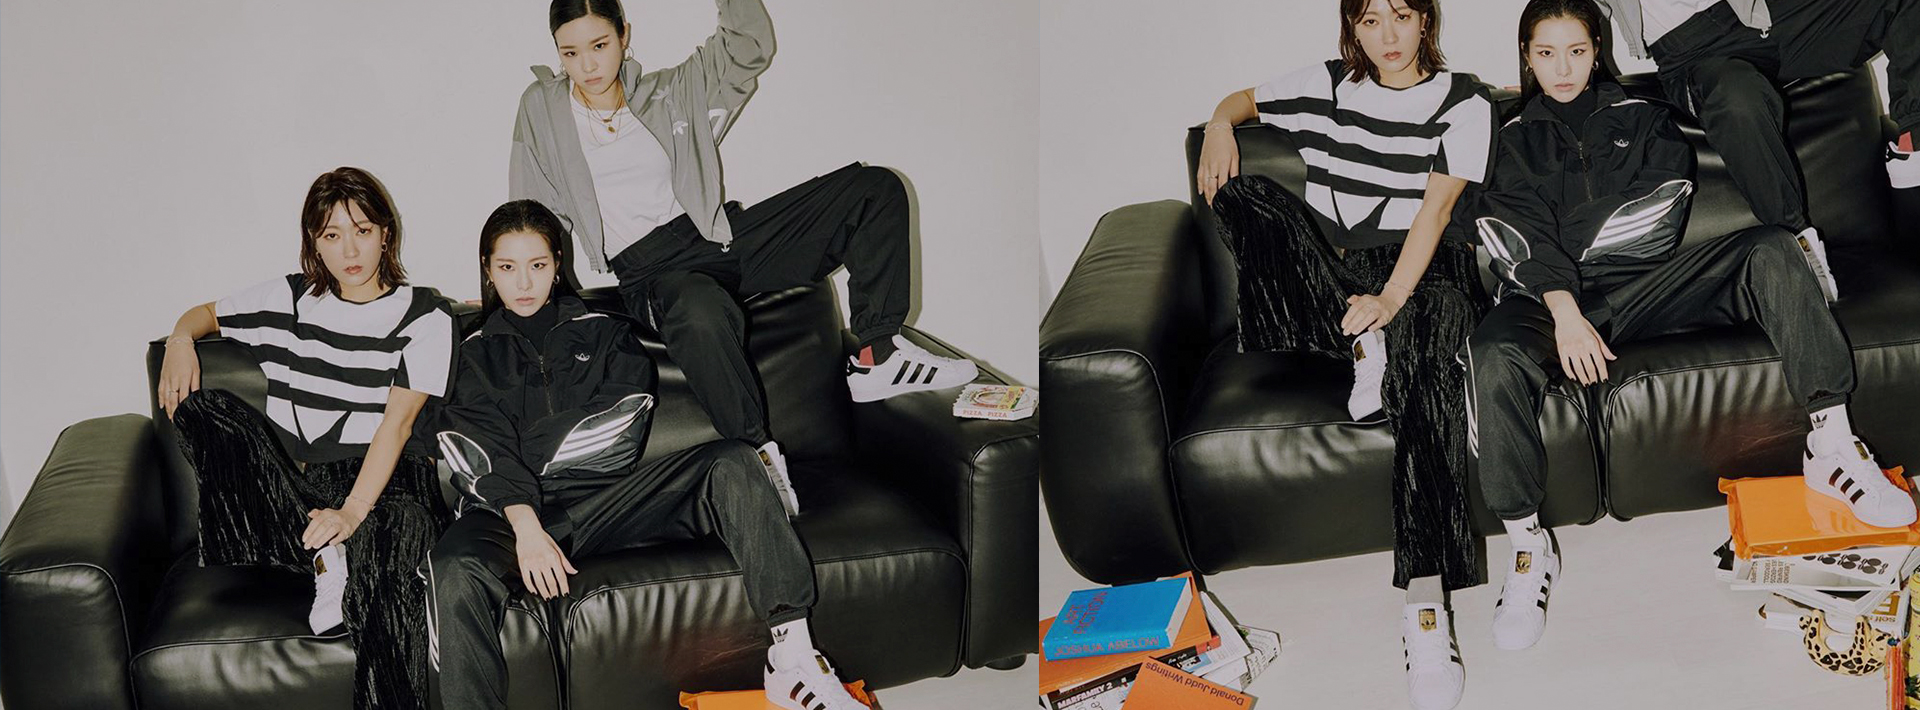 Feet on your fave leather sofa is necessary sometimes.